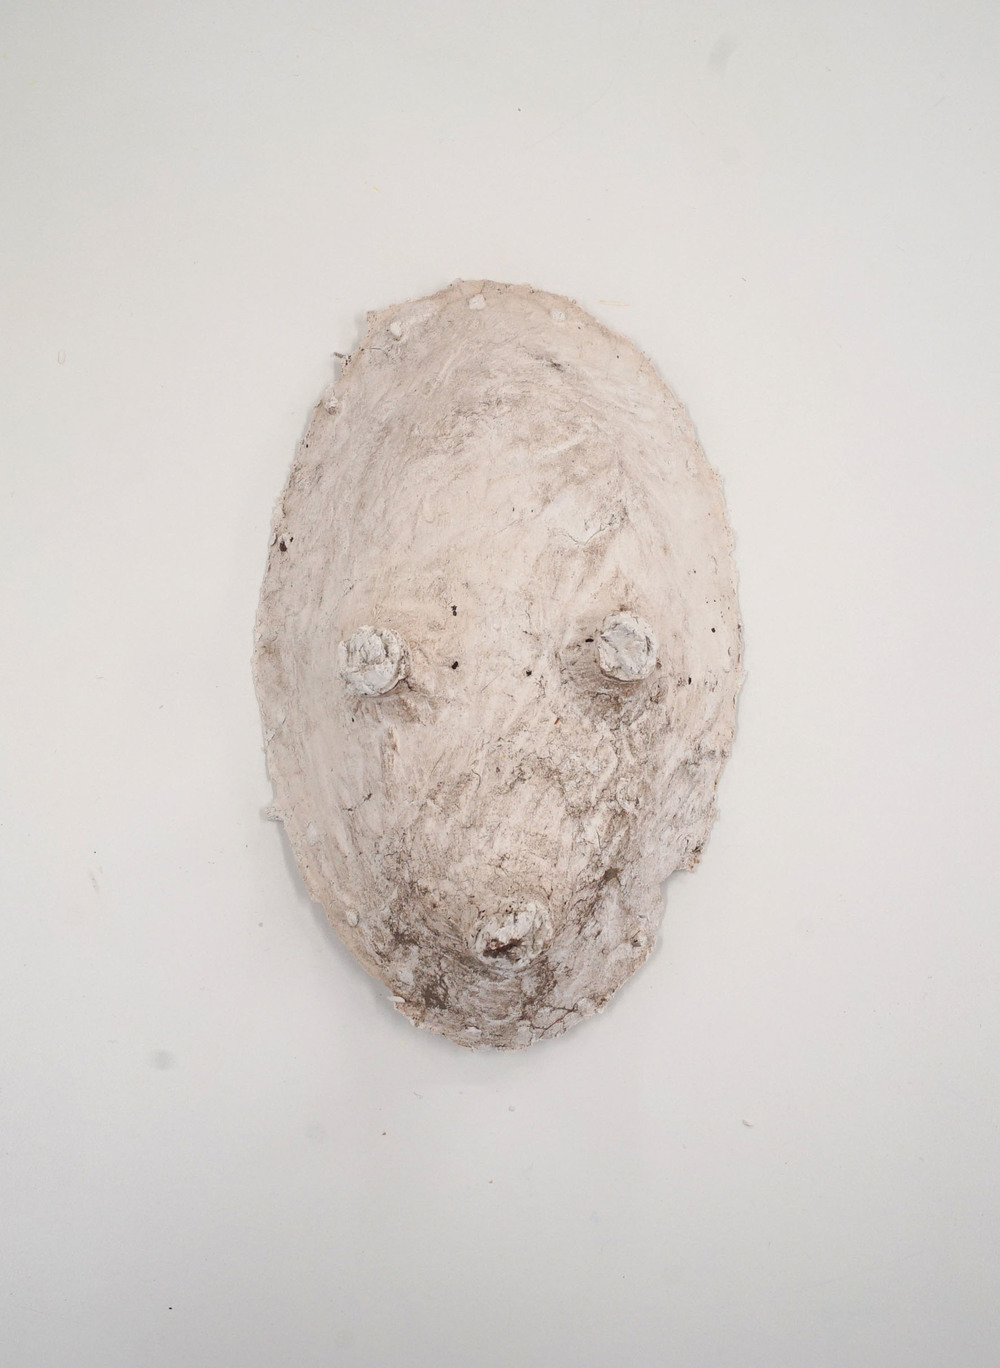 MEL O'CALLAGHAN, Dangerous looking-back, White clay mask, brass hanging system 15cm x 22cm x 10cm, 2015